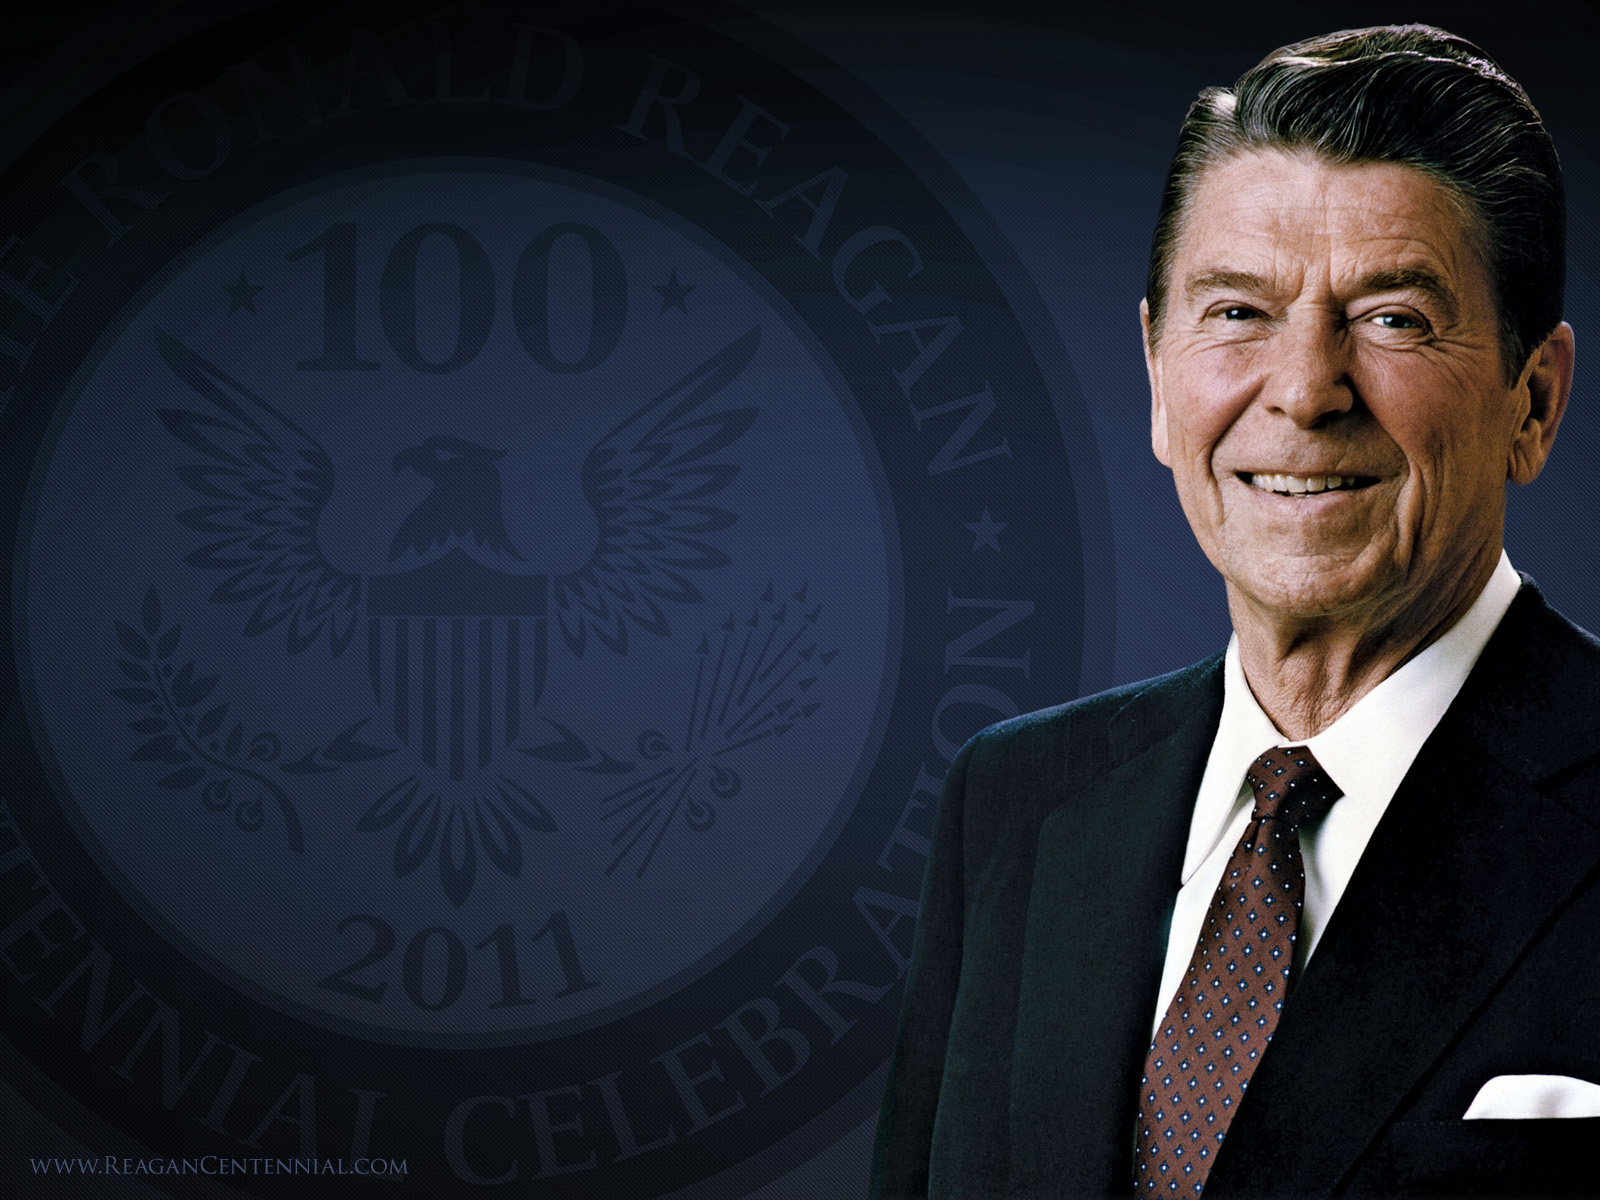 ronald reagans middle name